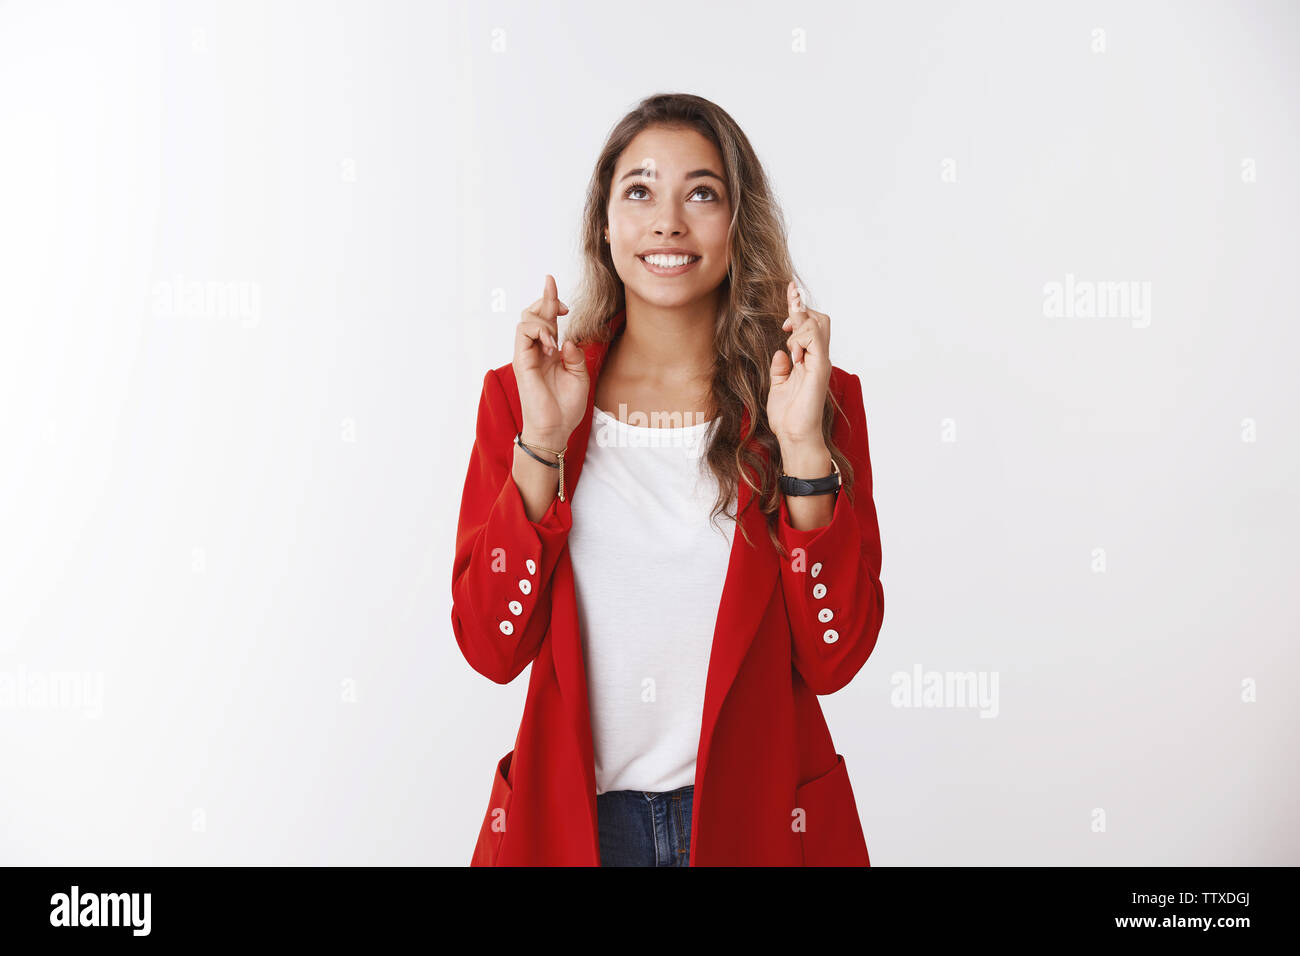 Upbeat excited charming optimistic cute female wearing red jacket praying looking skies cross fingers good luck anticiapting good news smiling broadly - Stock Image